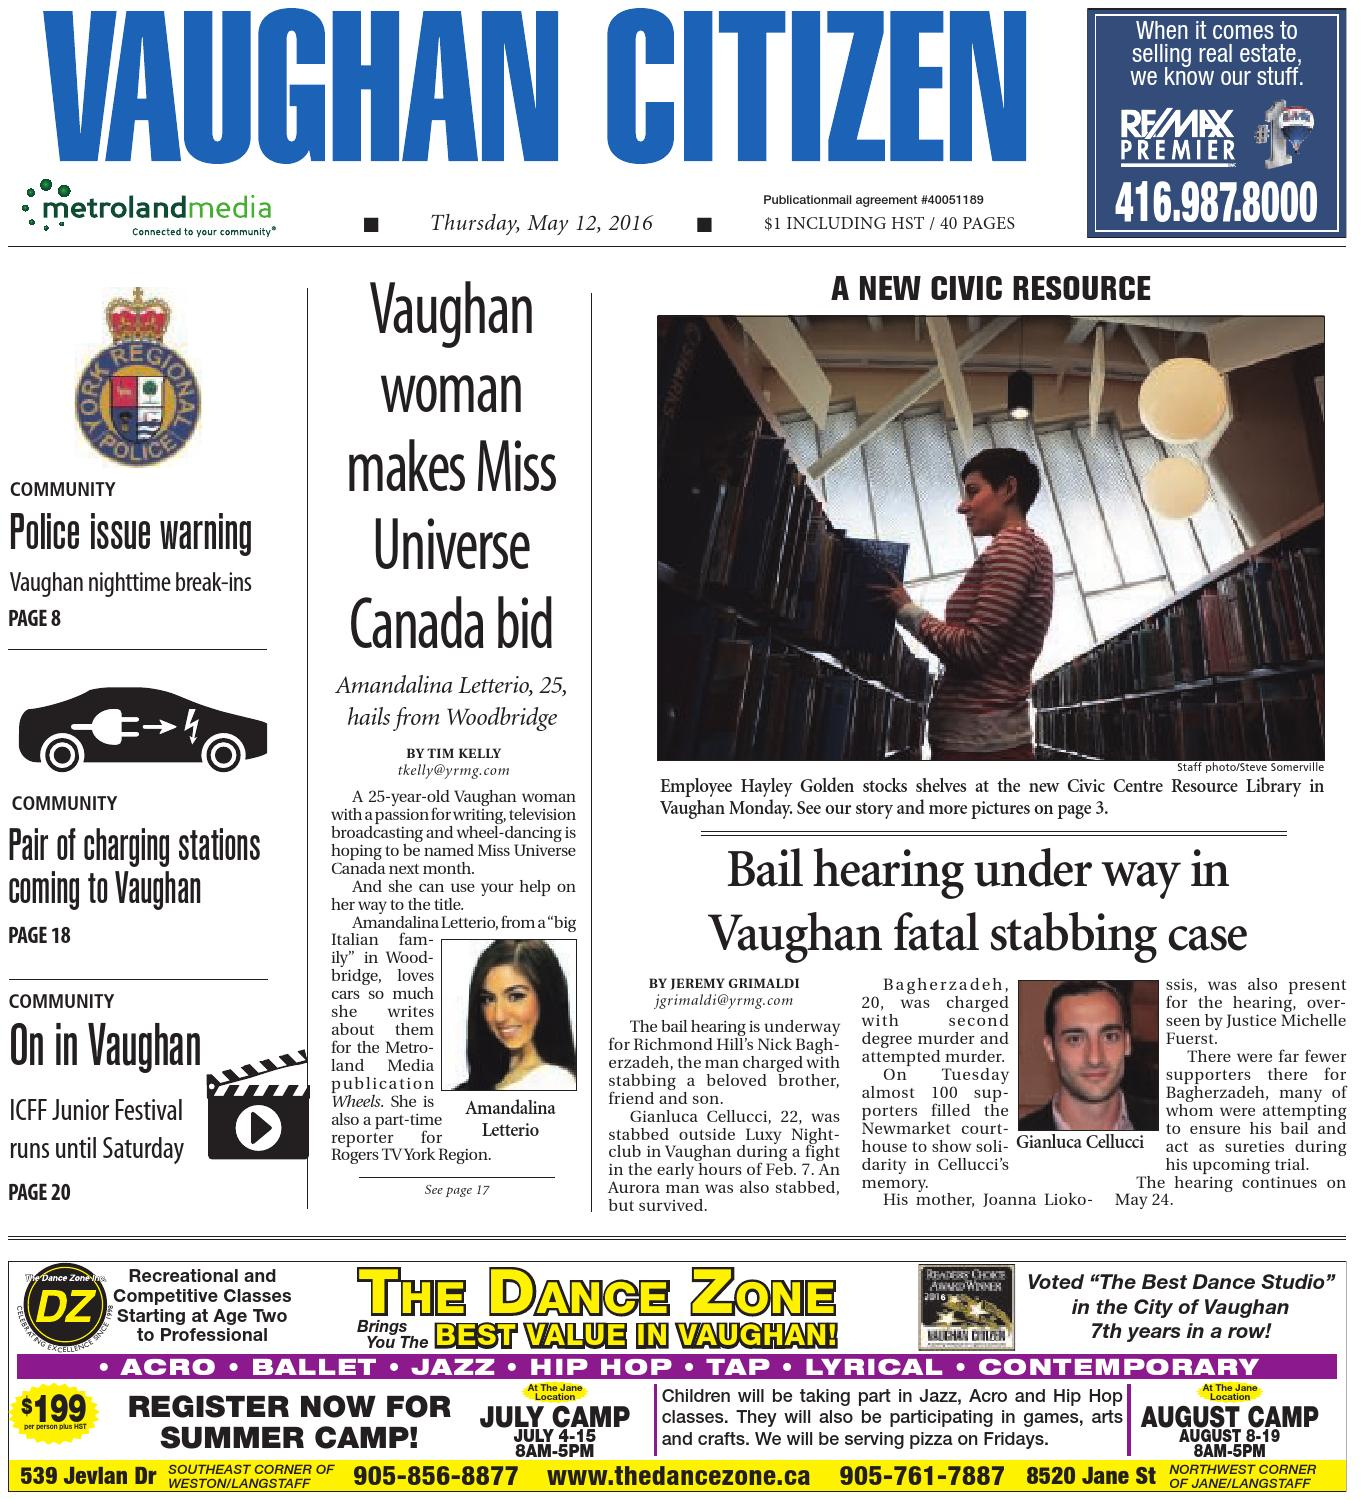 Vaughan Citizen May 12 2016 By Issuu Chopper Wiring Diagram Besides Maytag Atlantis Dryer